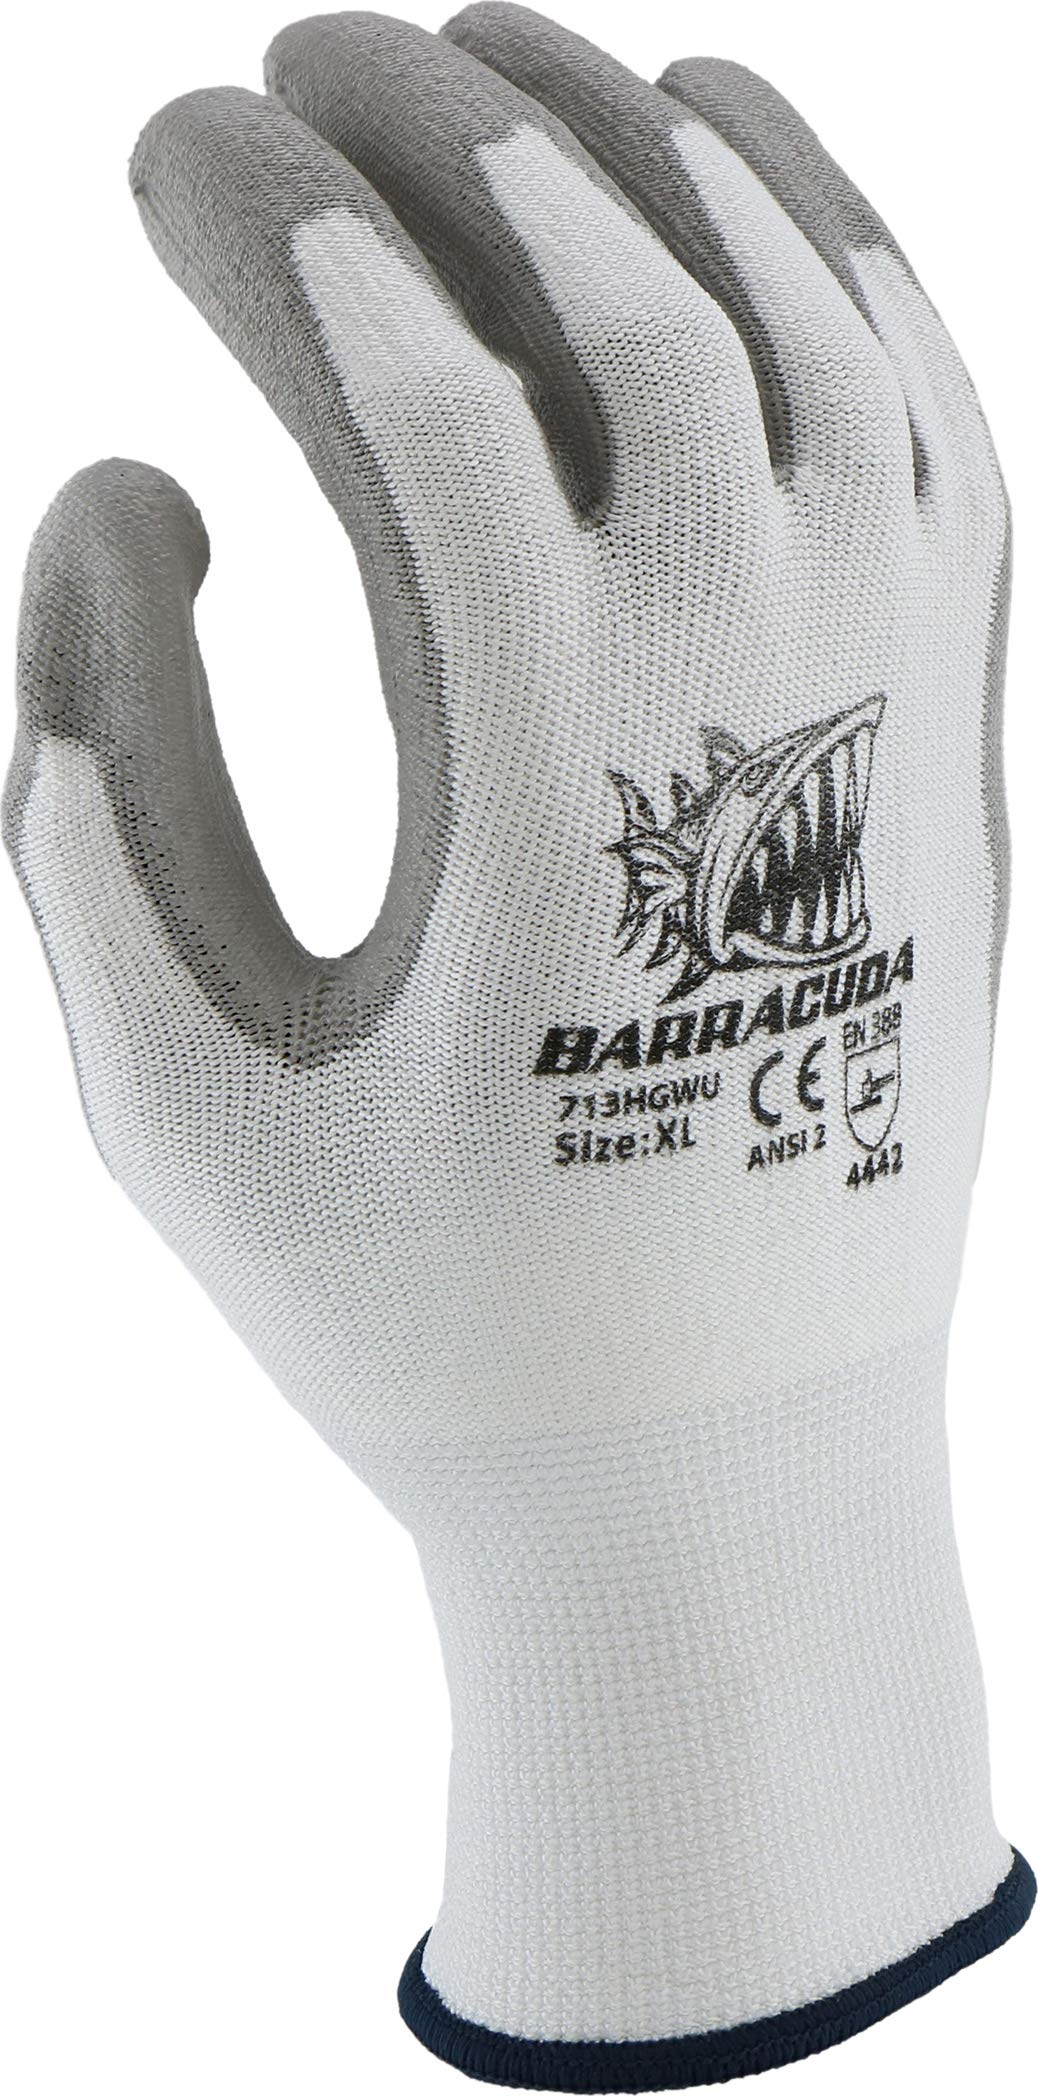 West Chester 713HGWU XL Barracuda White HPPE Shell with Grey PU Dip Cut Protection Gloves, XL (Pack of 12) by West Chester (Image #5)